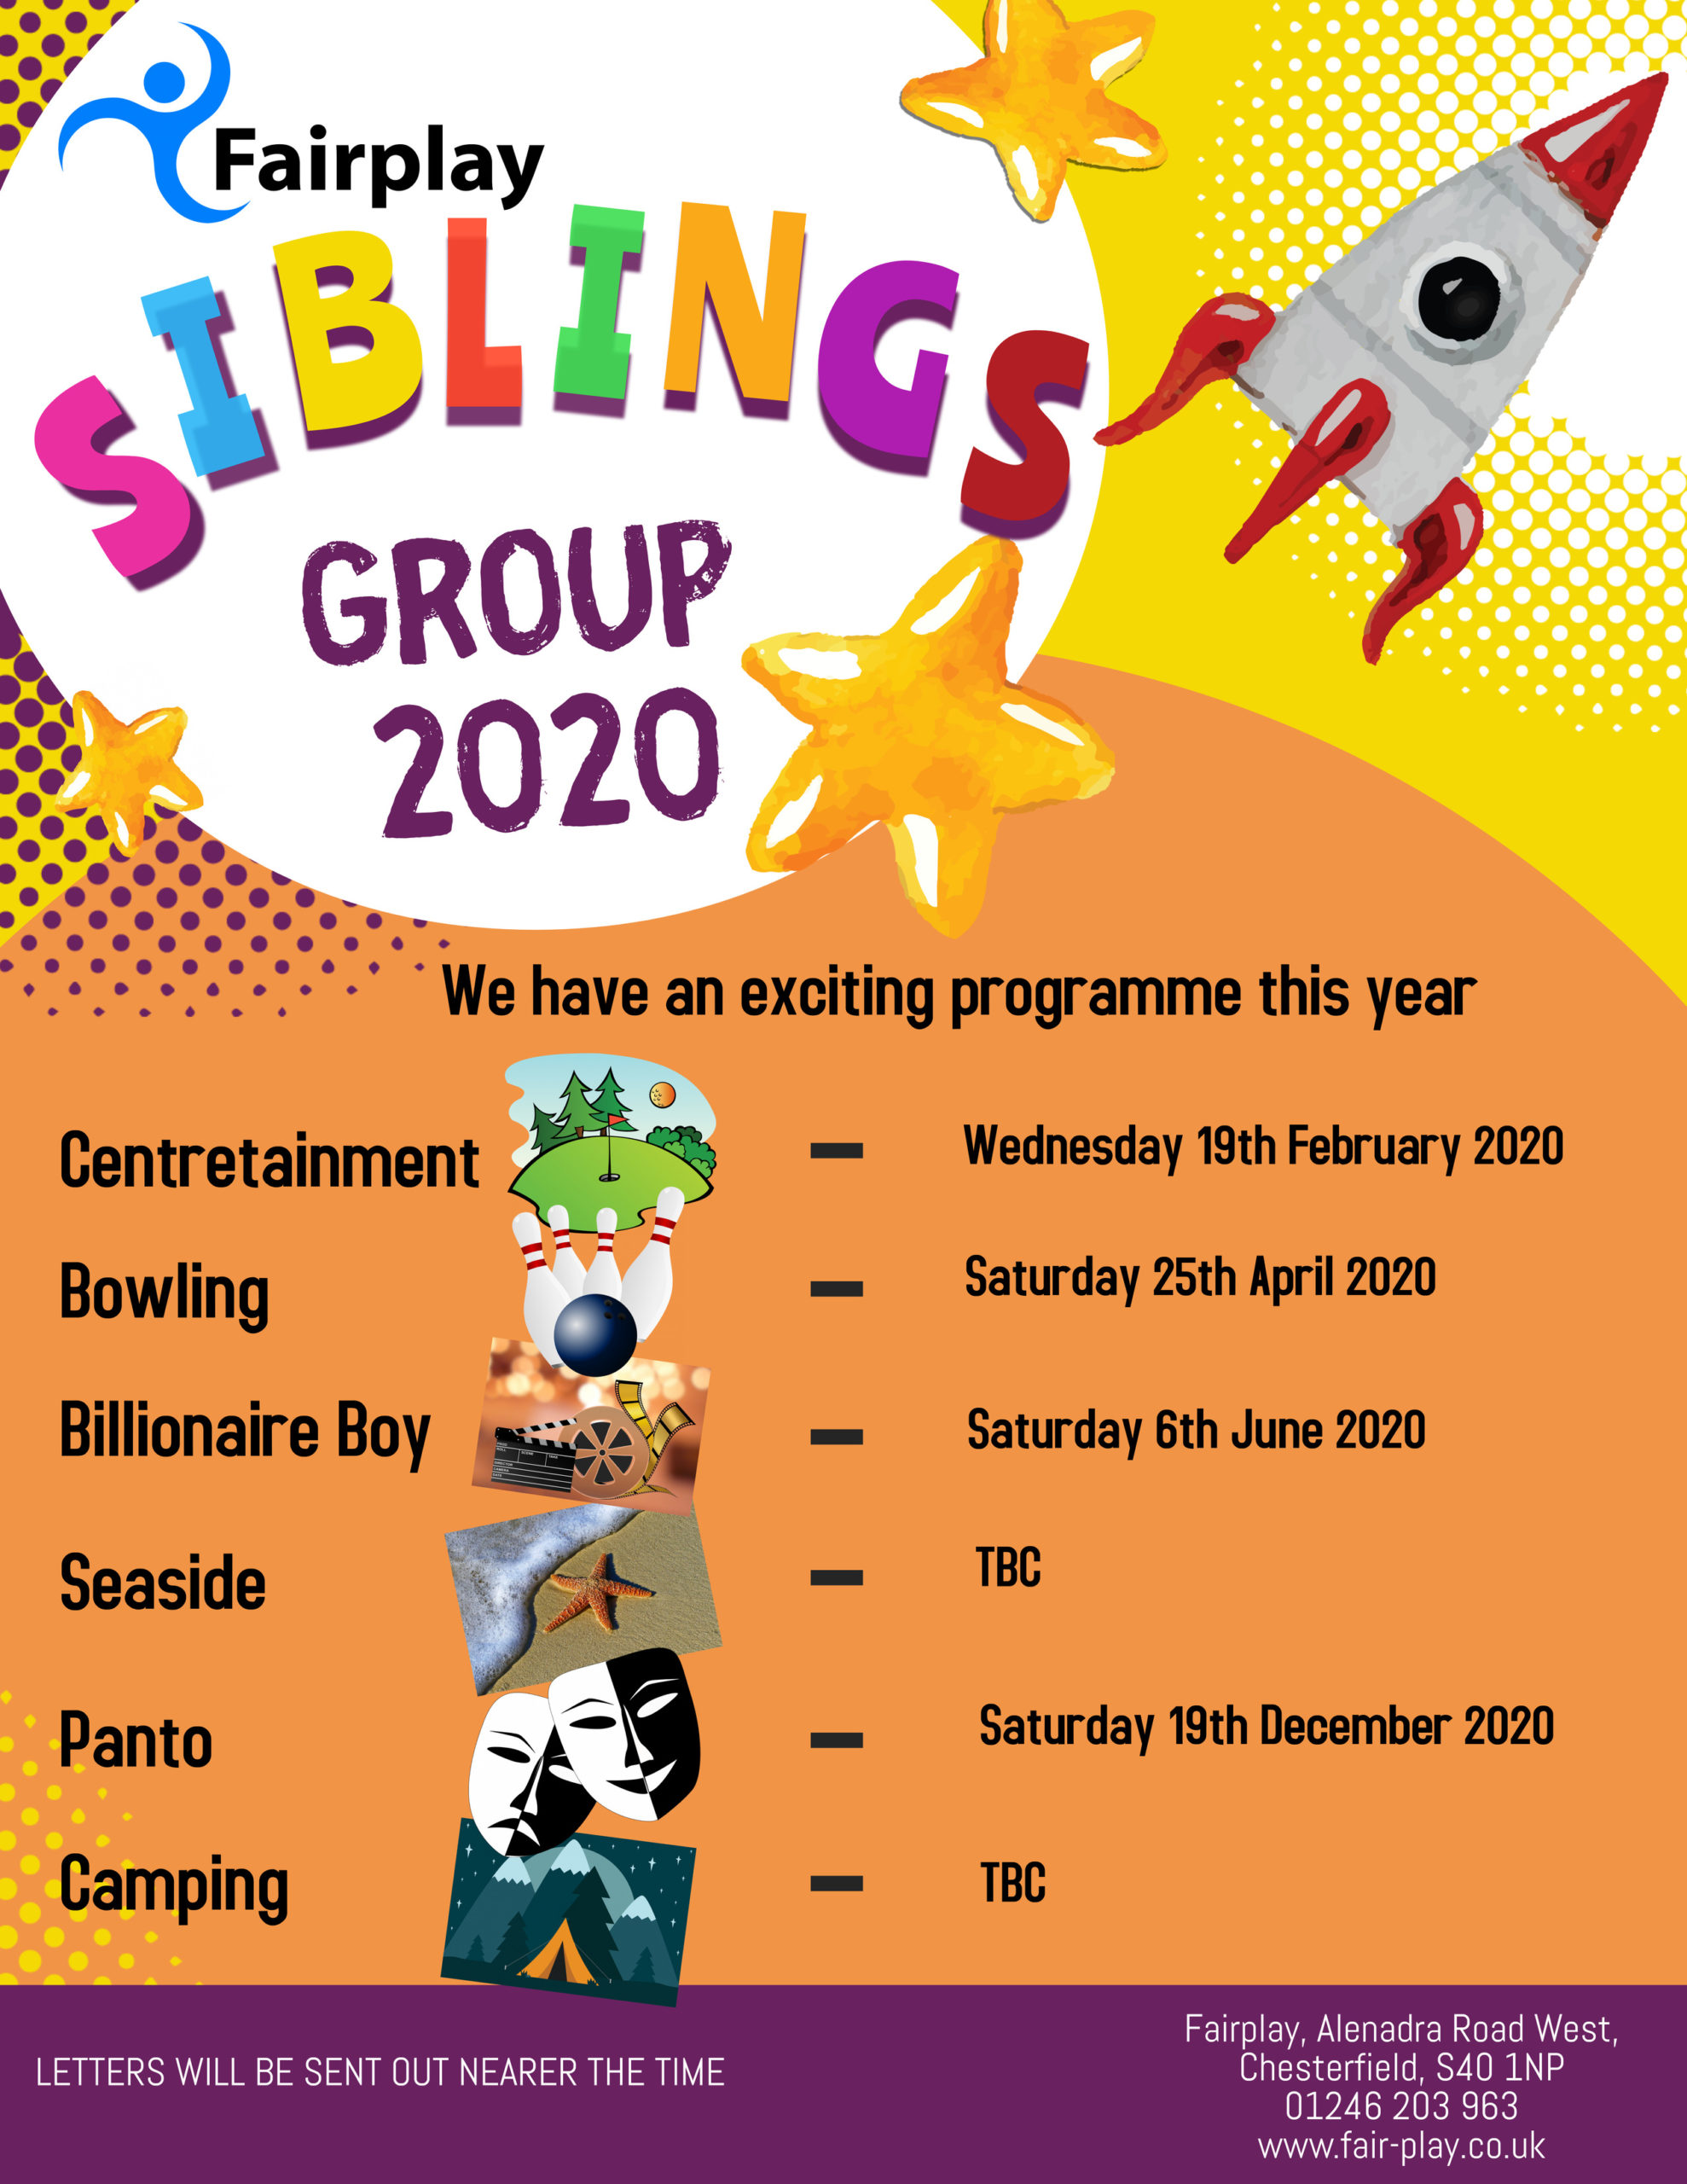 Siblings Group 2020 – various events